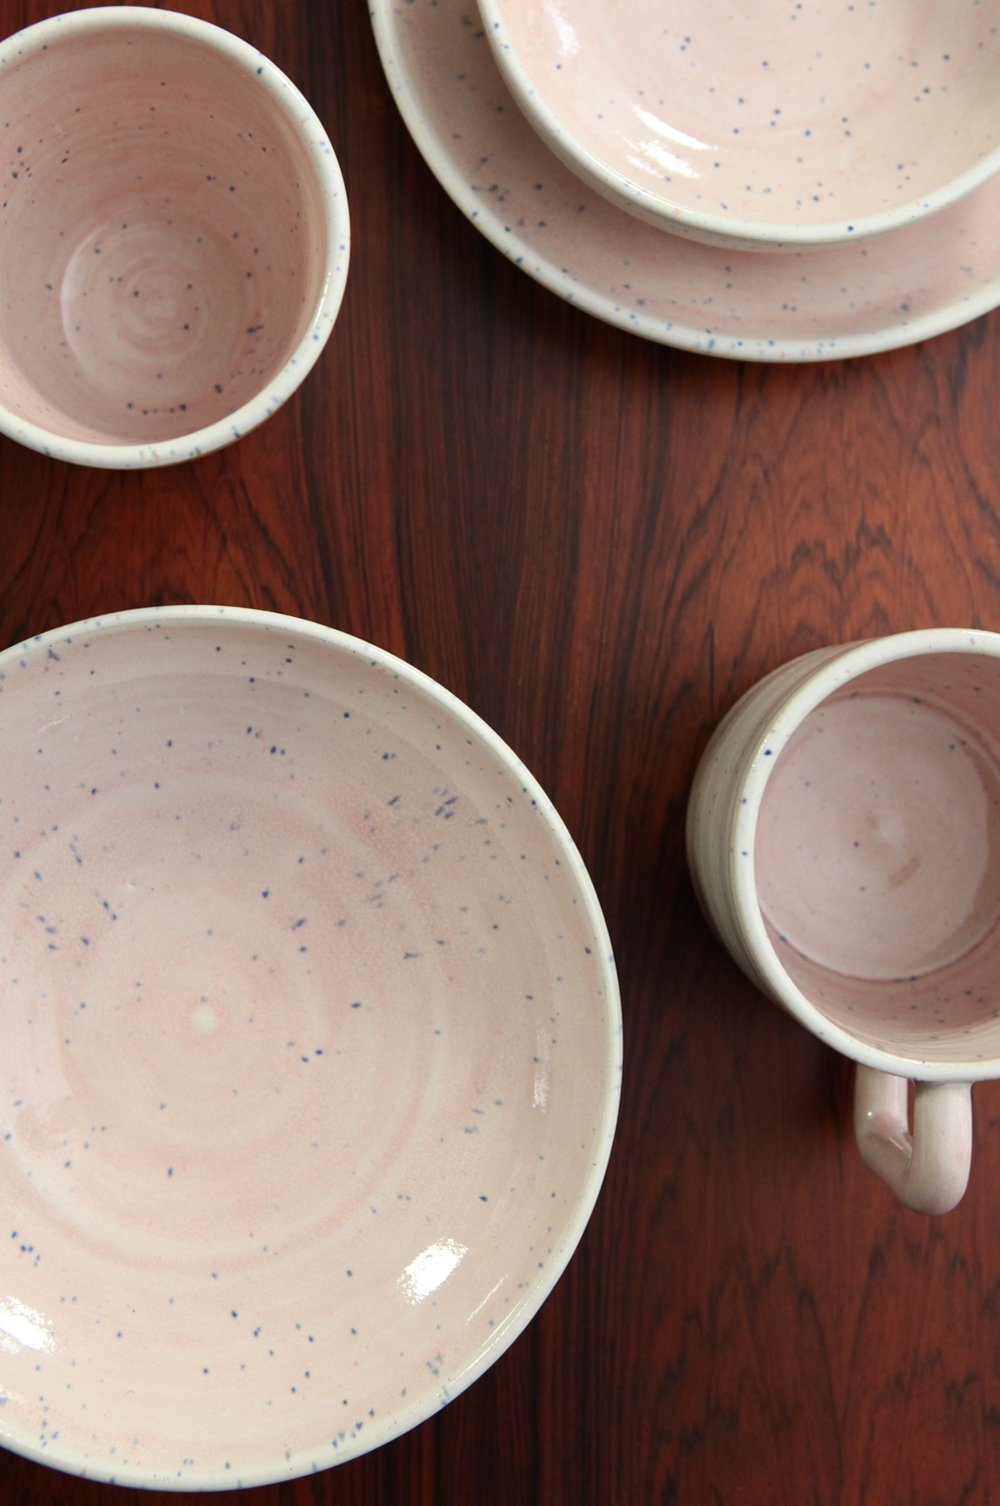 Homeware Collection - Satisfyingly simple stoneware forms with the signature speckled two tone glaze